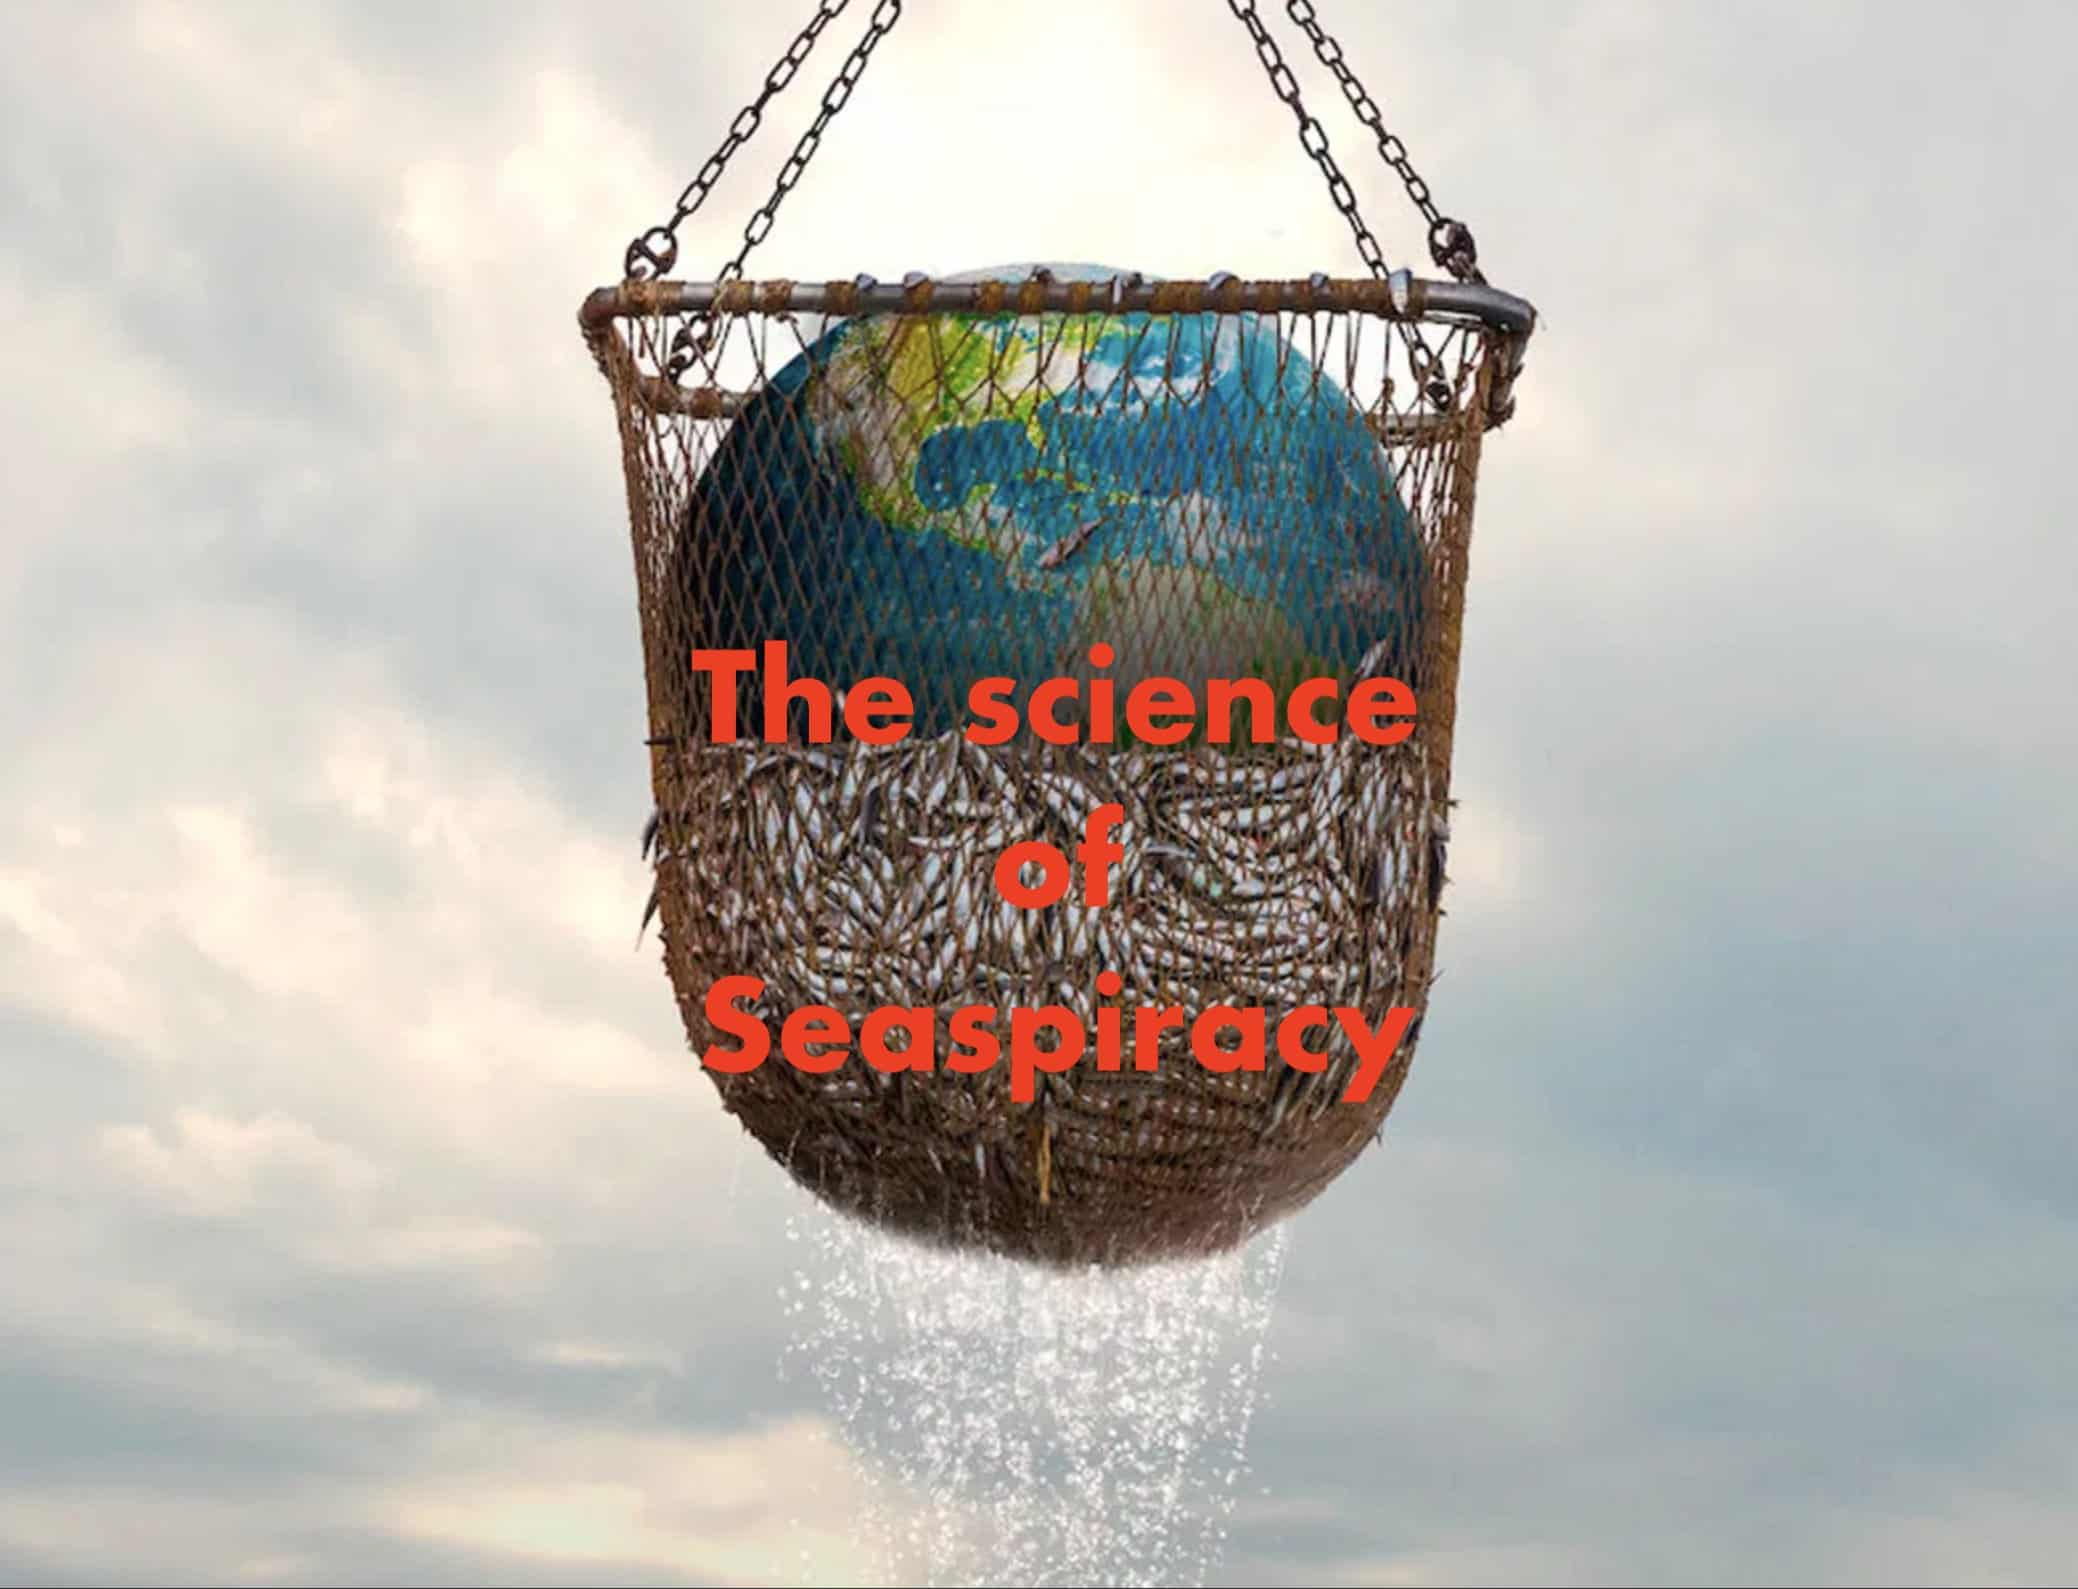 The Science of Seaspiracy overlayed on seaspiracy poster